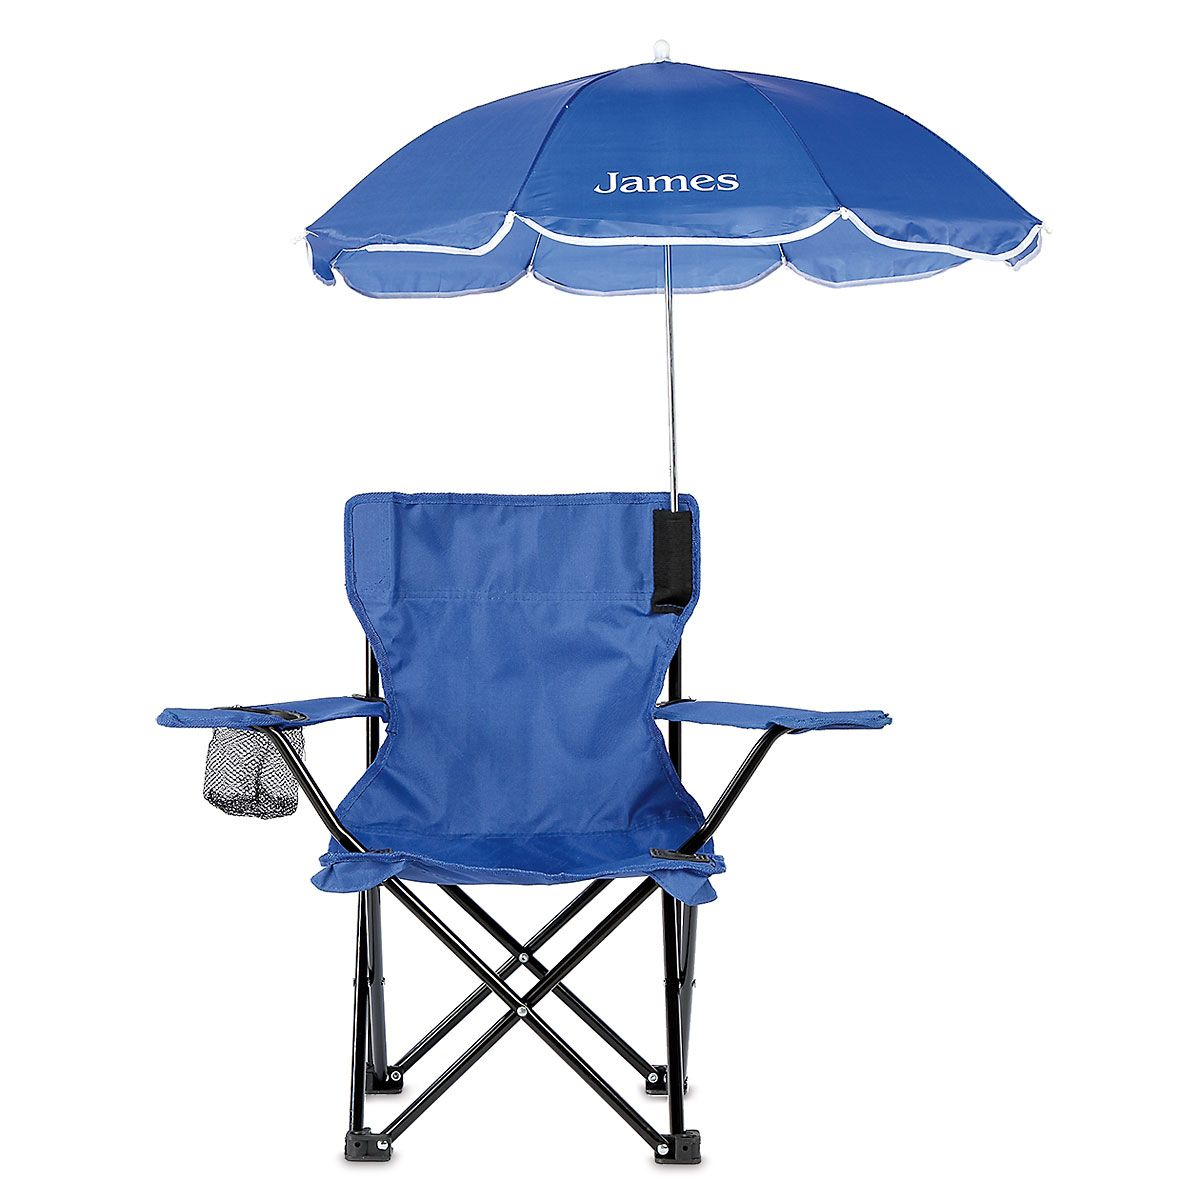 Personalized Kid-Size All-Season Umbrella Chairs